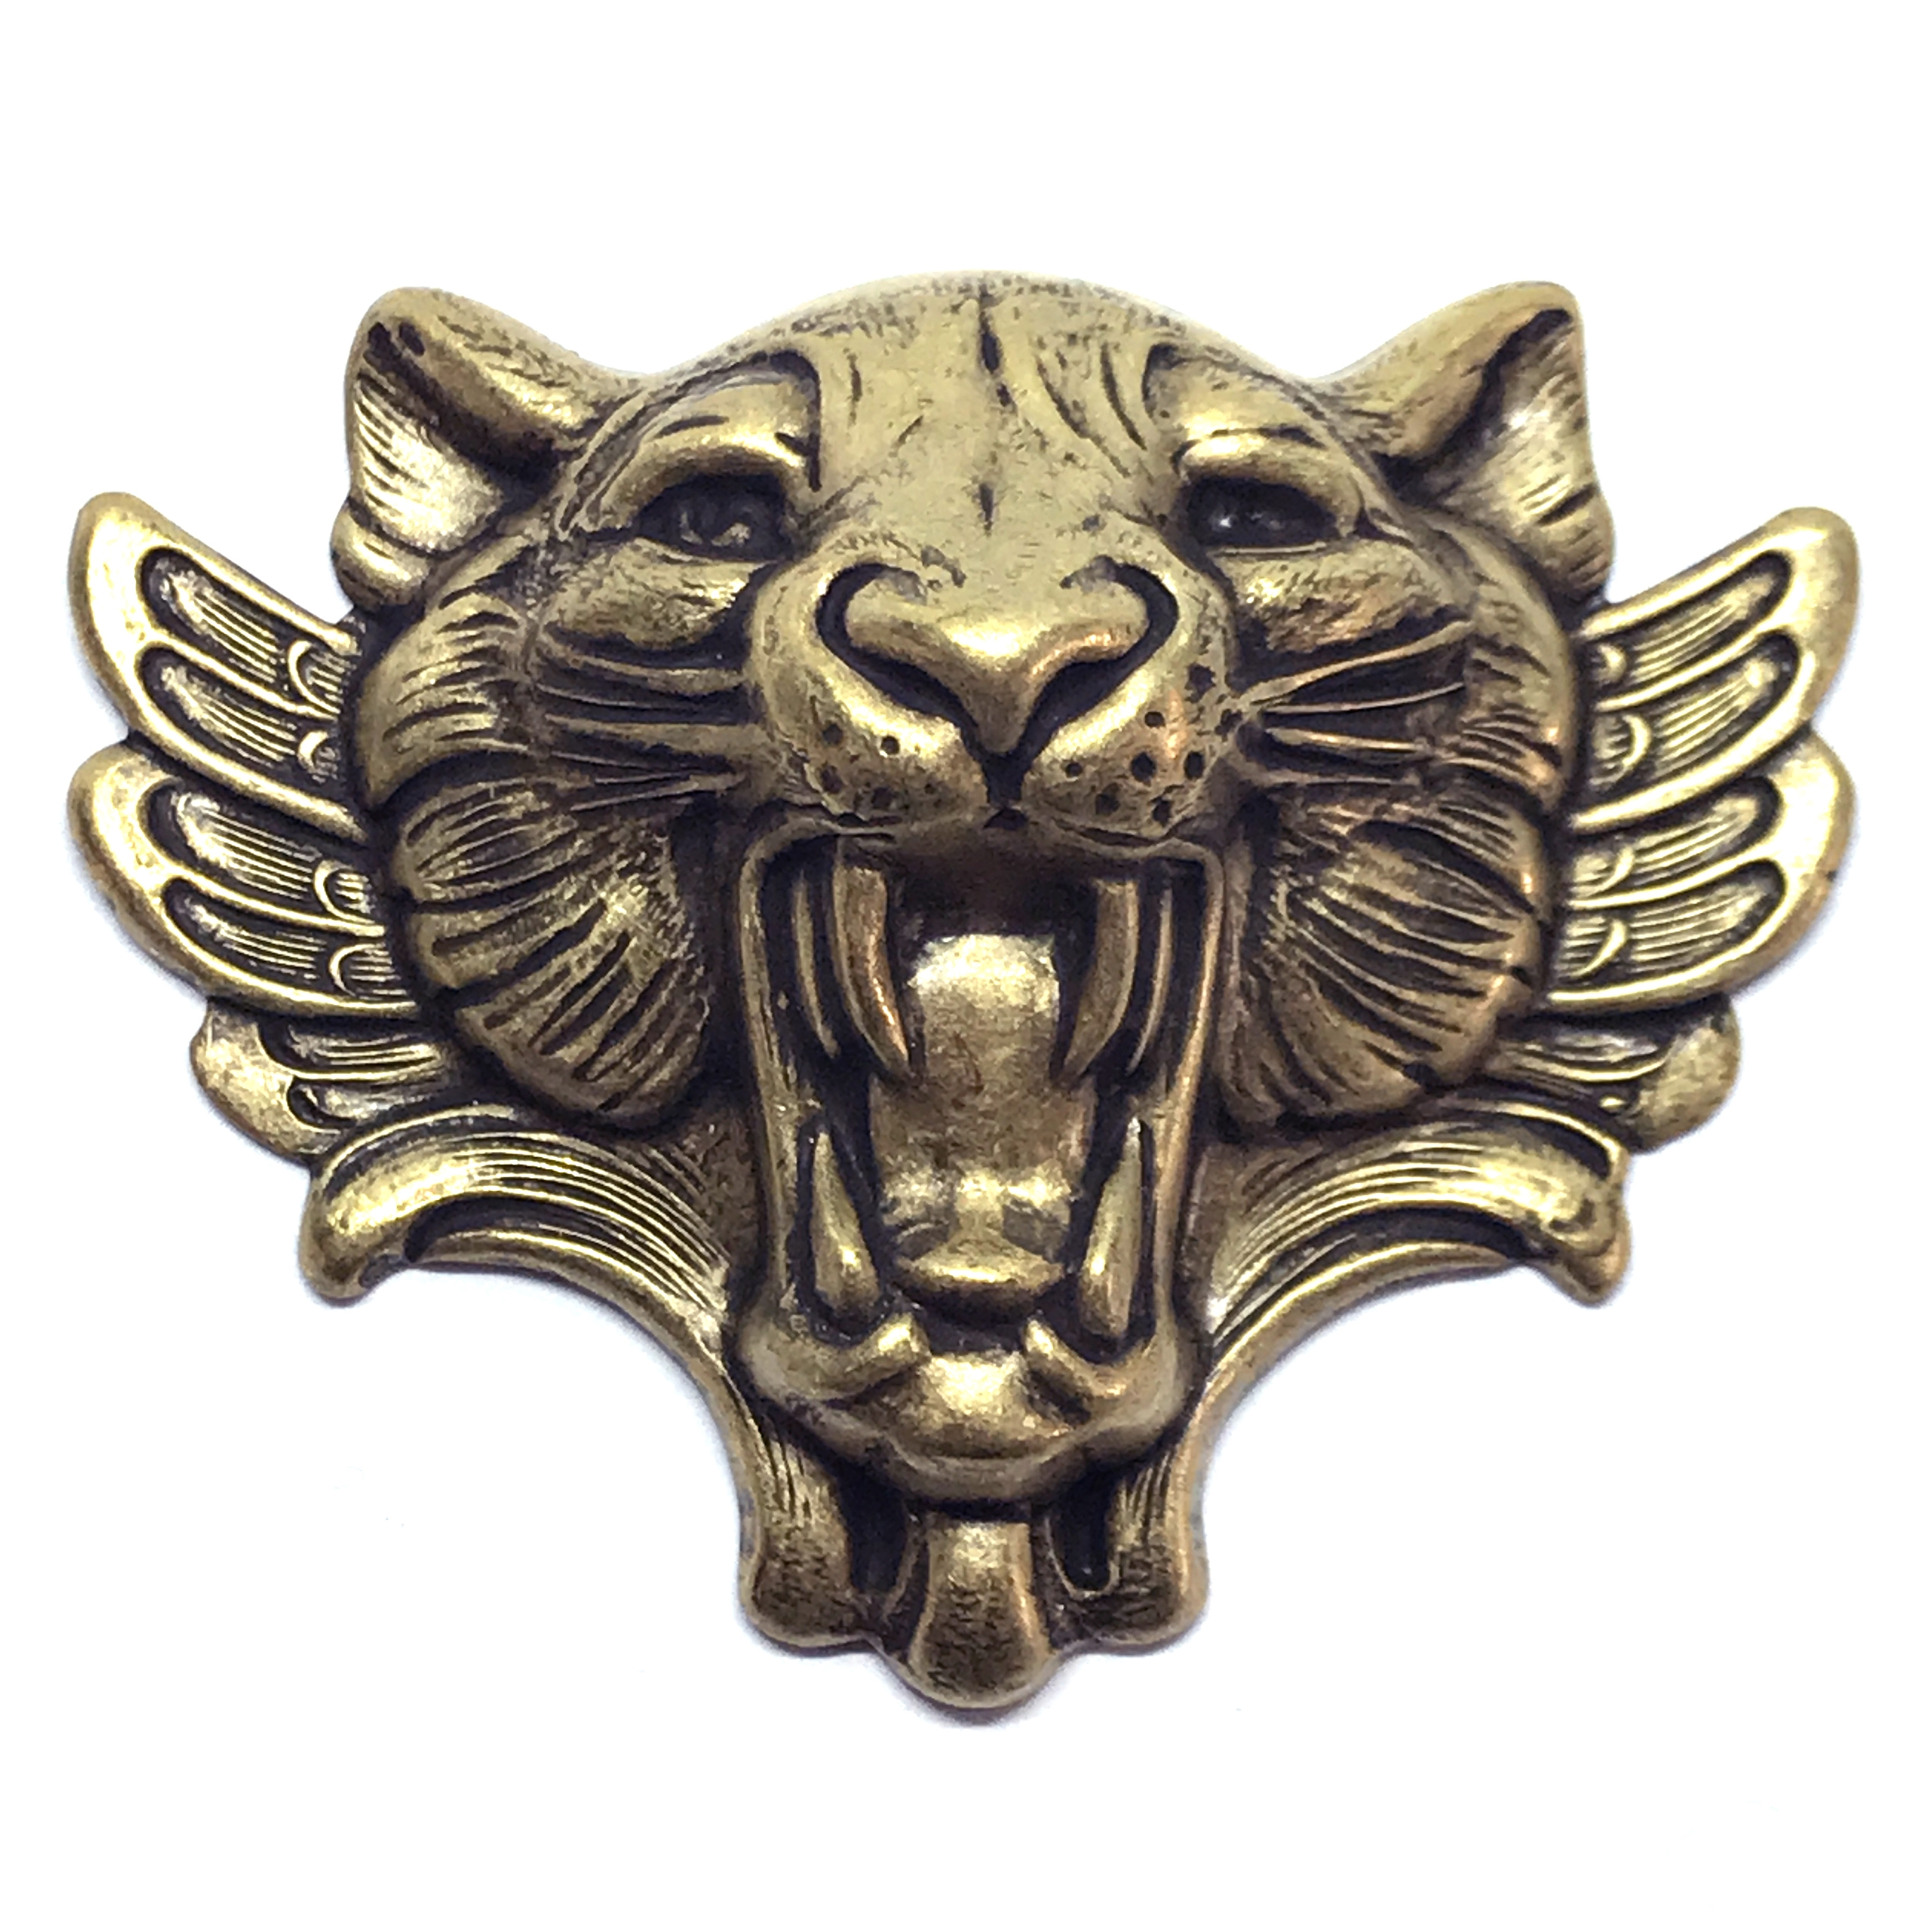 brass tiger, brass stampings, jungle cat, brass ox, 05306, antique brass, jewelry making supplies, vintage jewelry supplies, US made, nickel free, bsueboutiques, 54x66mm